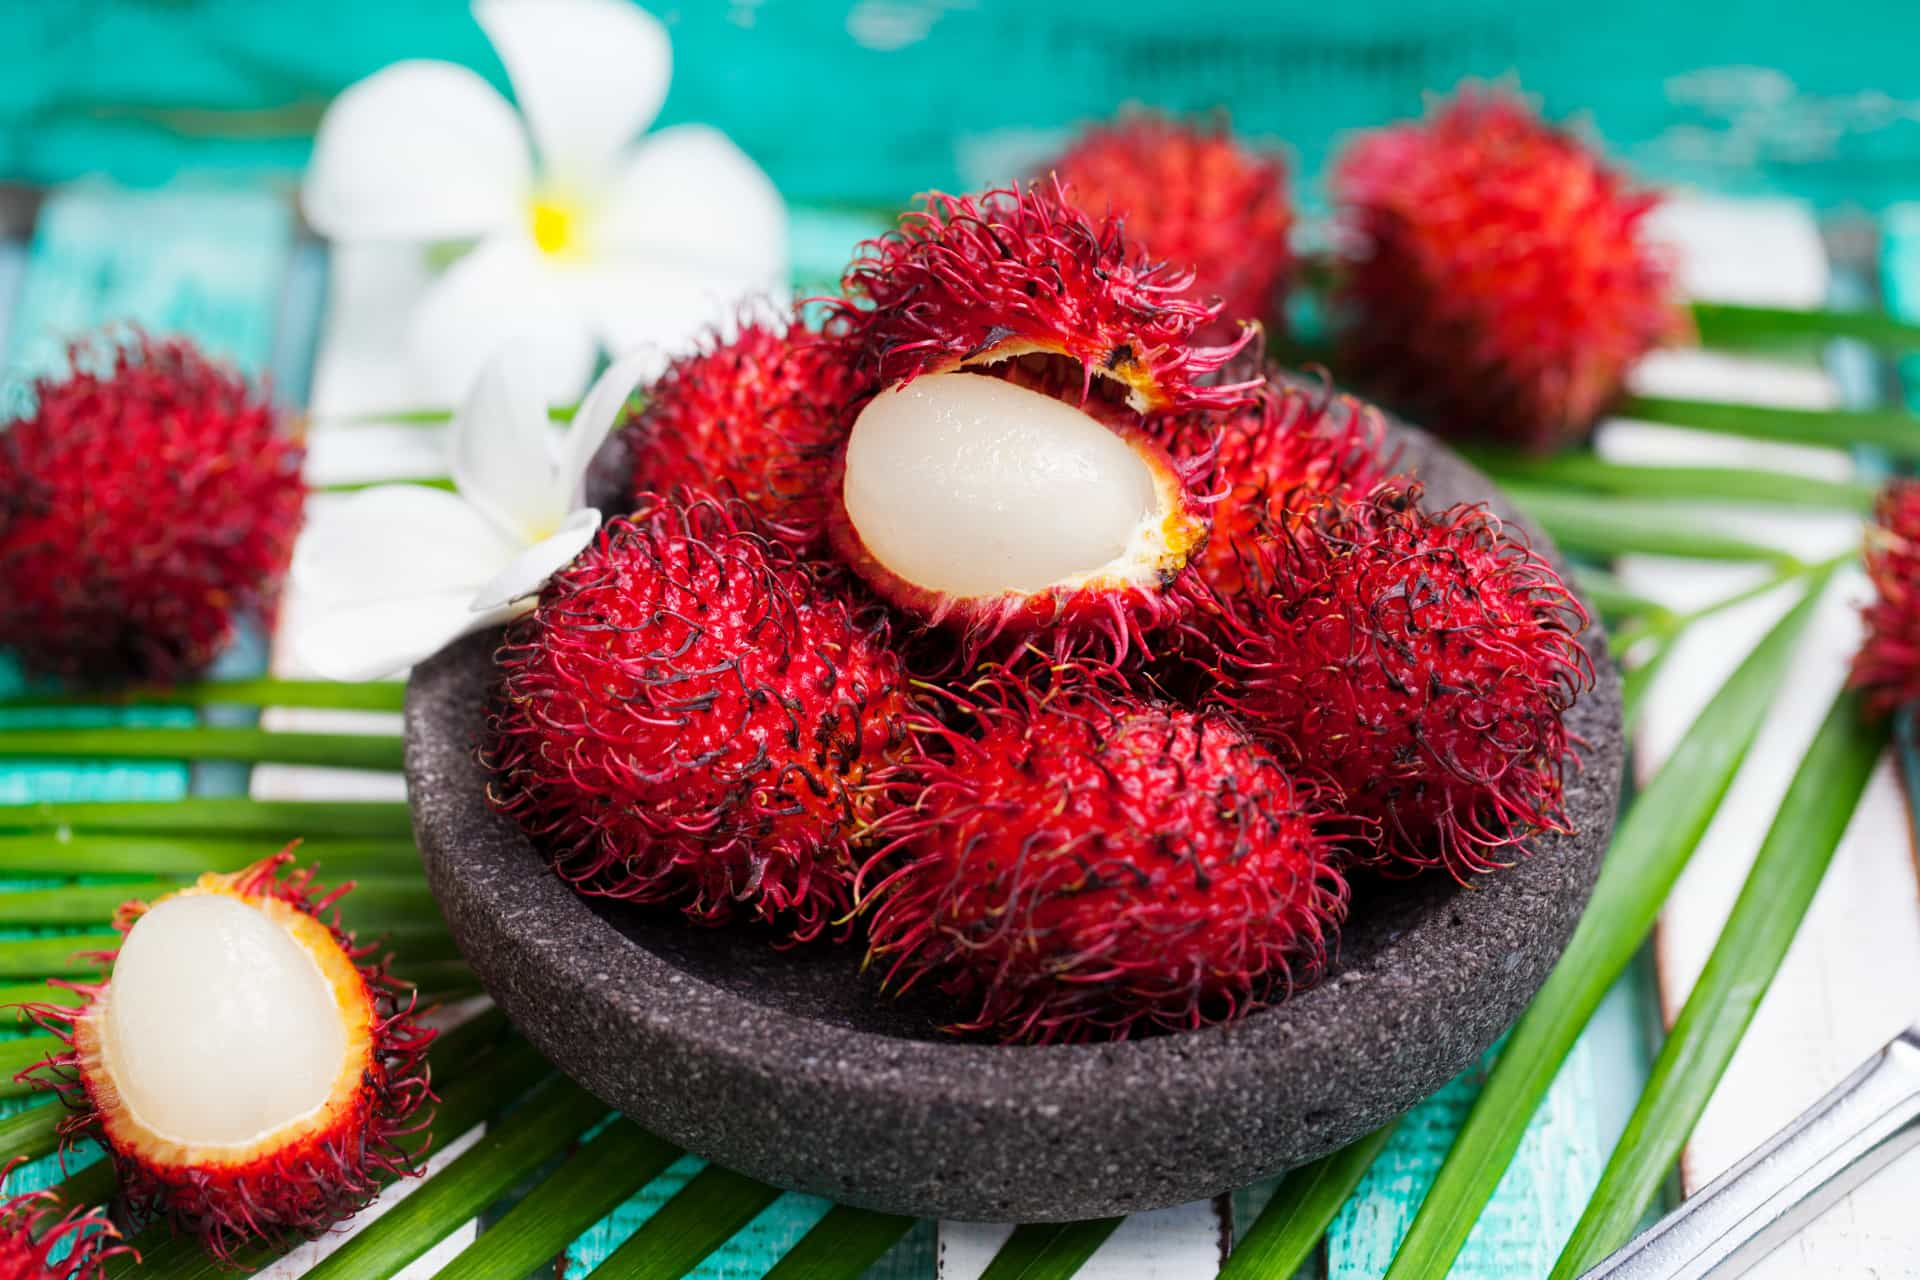 Top 12 Tropical Fruits to Eat When in Thailand